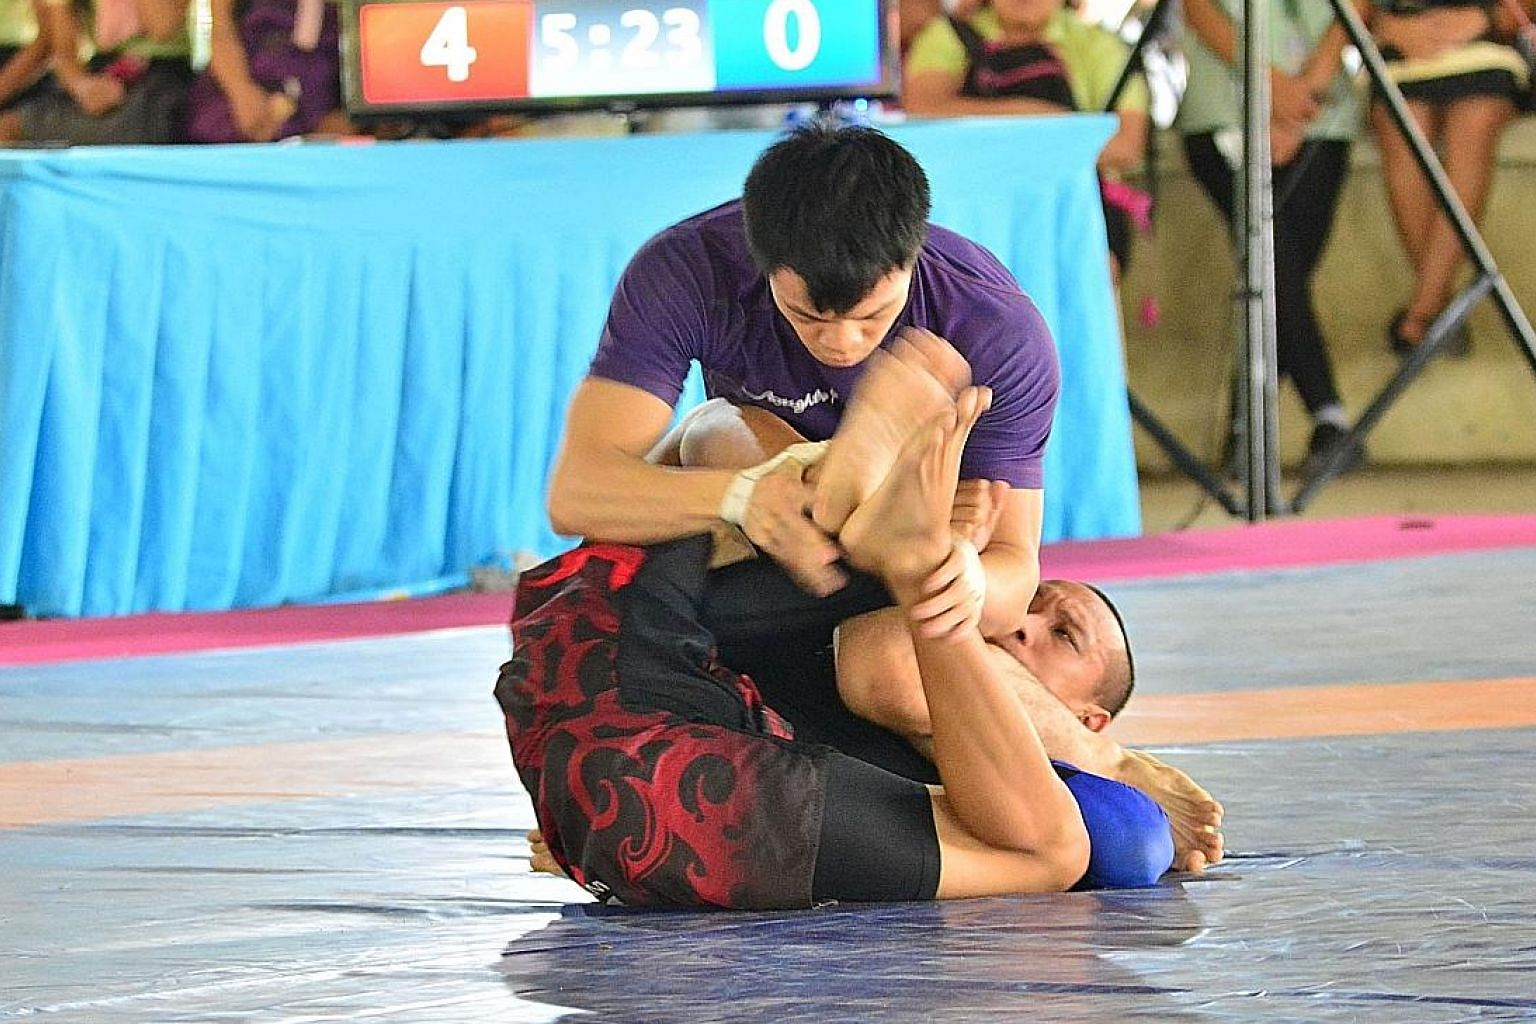 Garie Tang well in control on his way to a gold medal in the no-gi grappling 58kg class at the South-east Asian Wrestling and Grappling Championship in the Philippines.